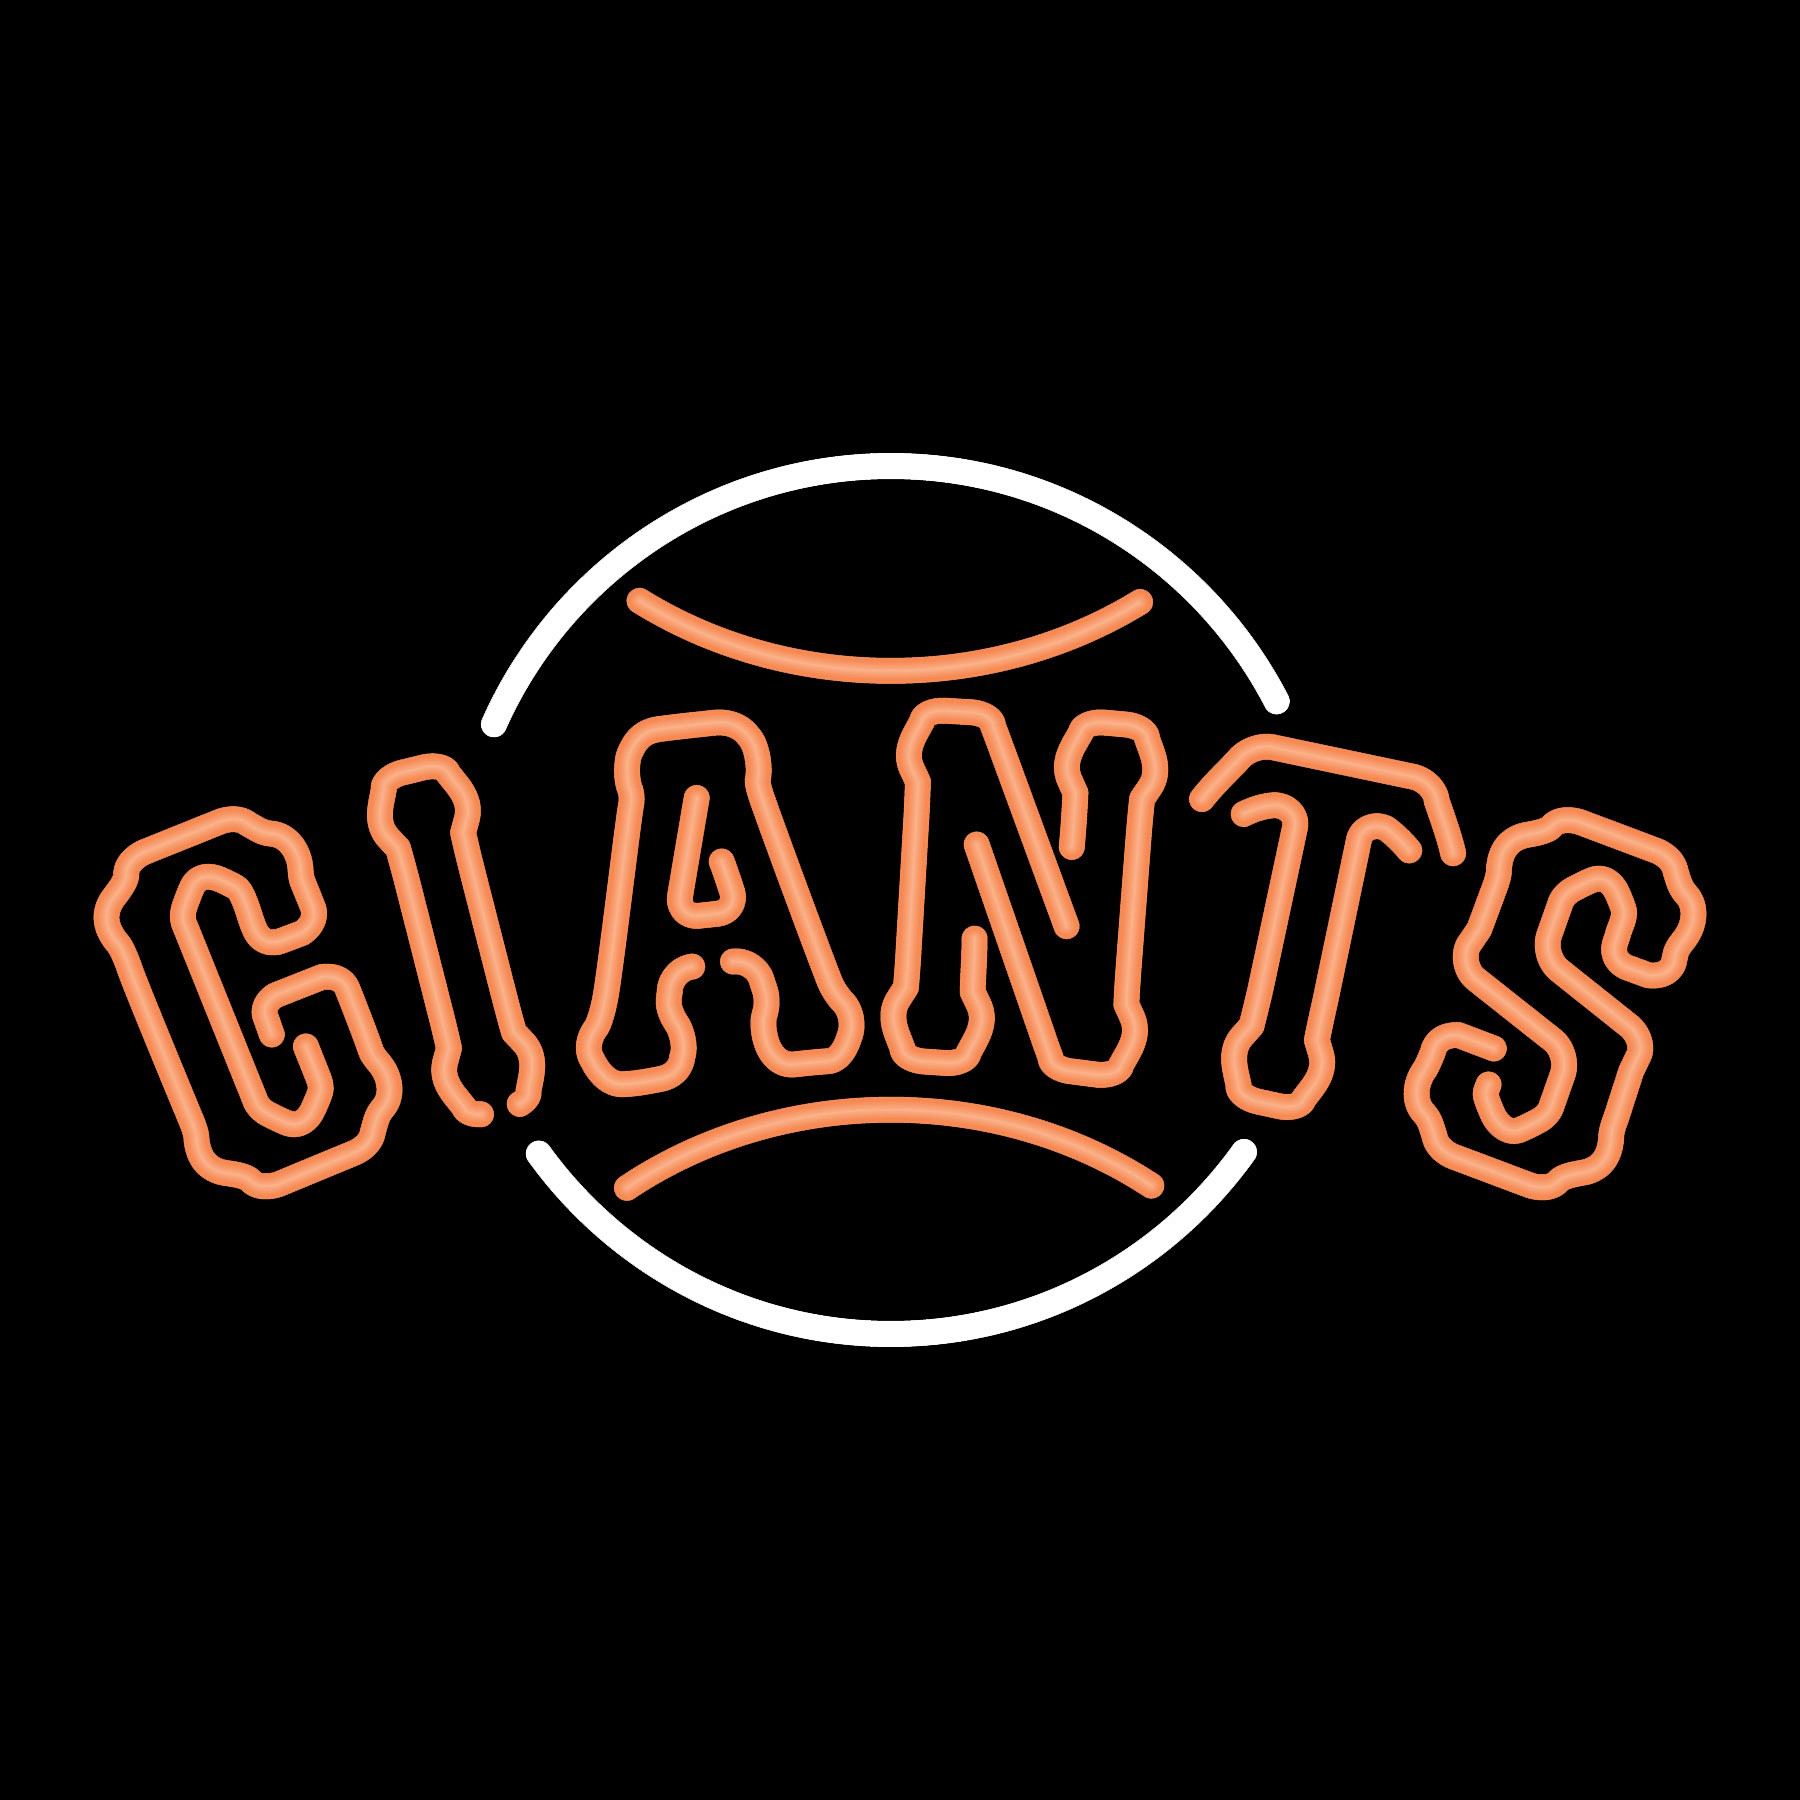 SF Giants Wallpaper 13607